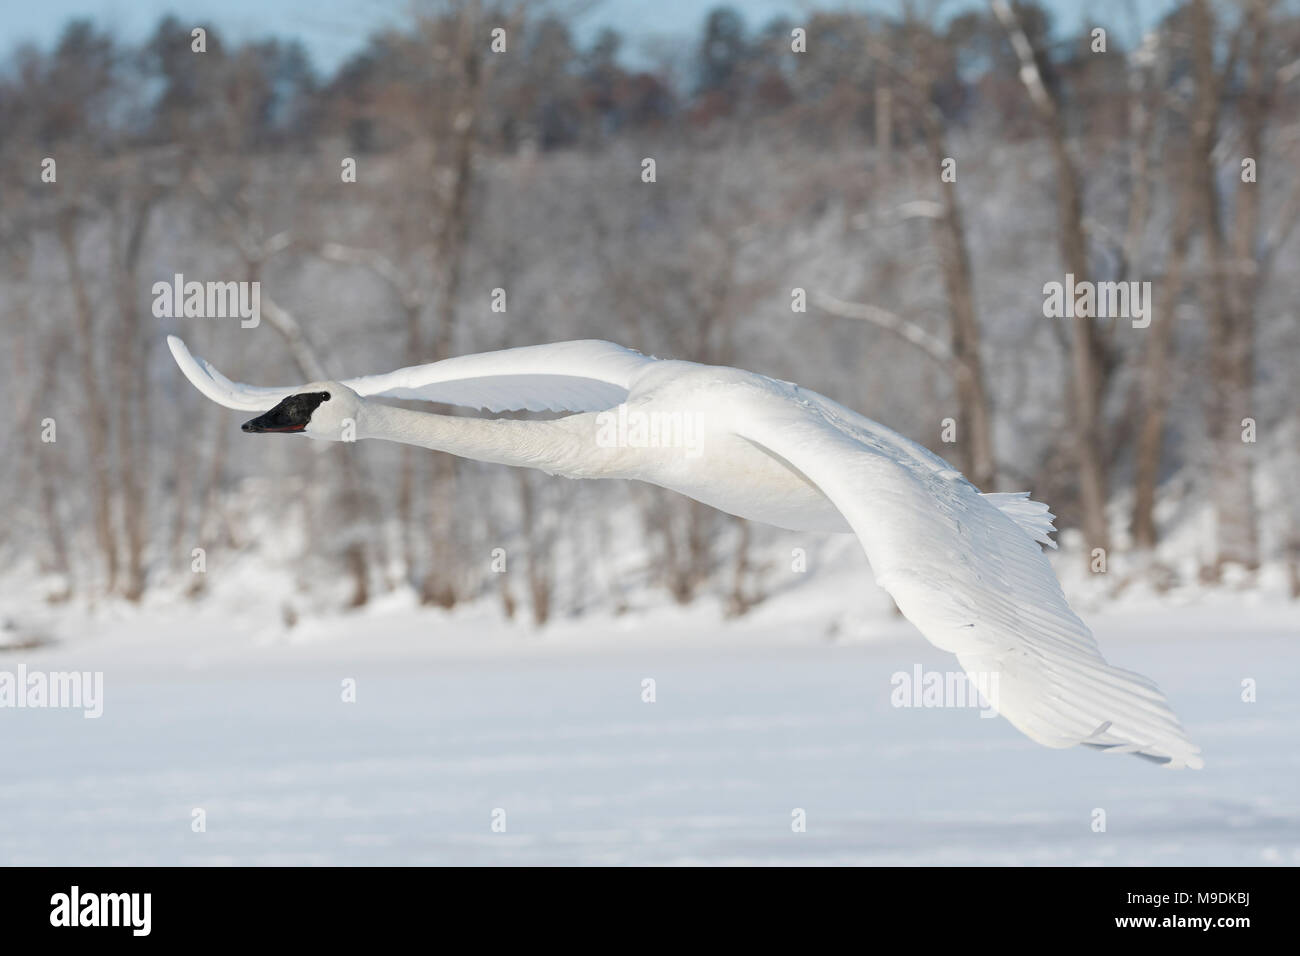 Trumpeter swan (Cygnus buccinator) taking off from St. Croix river, WI, USA, late February, by Dominique Braud/Dembinsky Photo Assoc - Stock Image